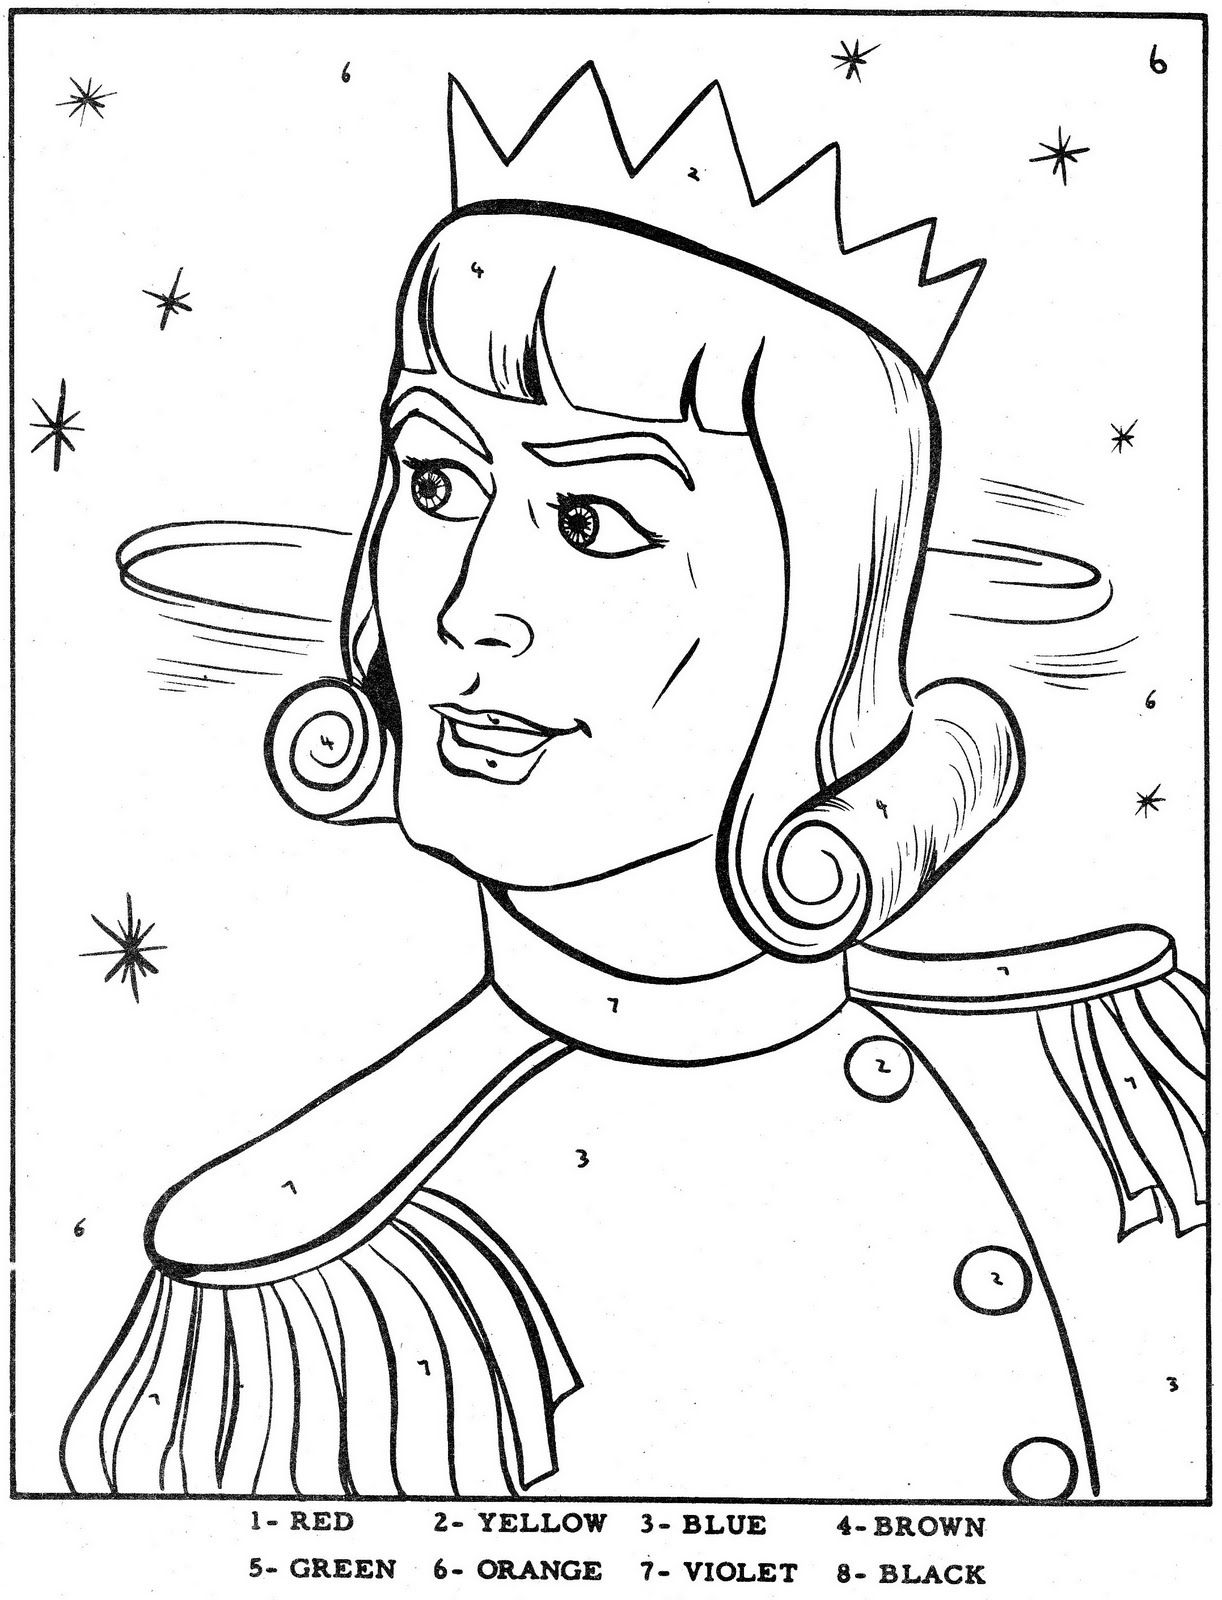 ava coloring pages - photo#13